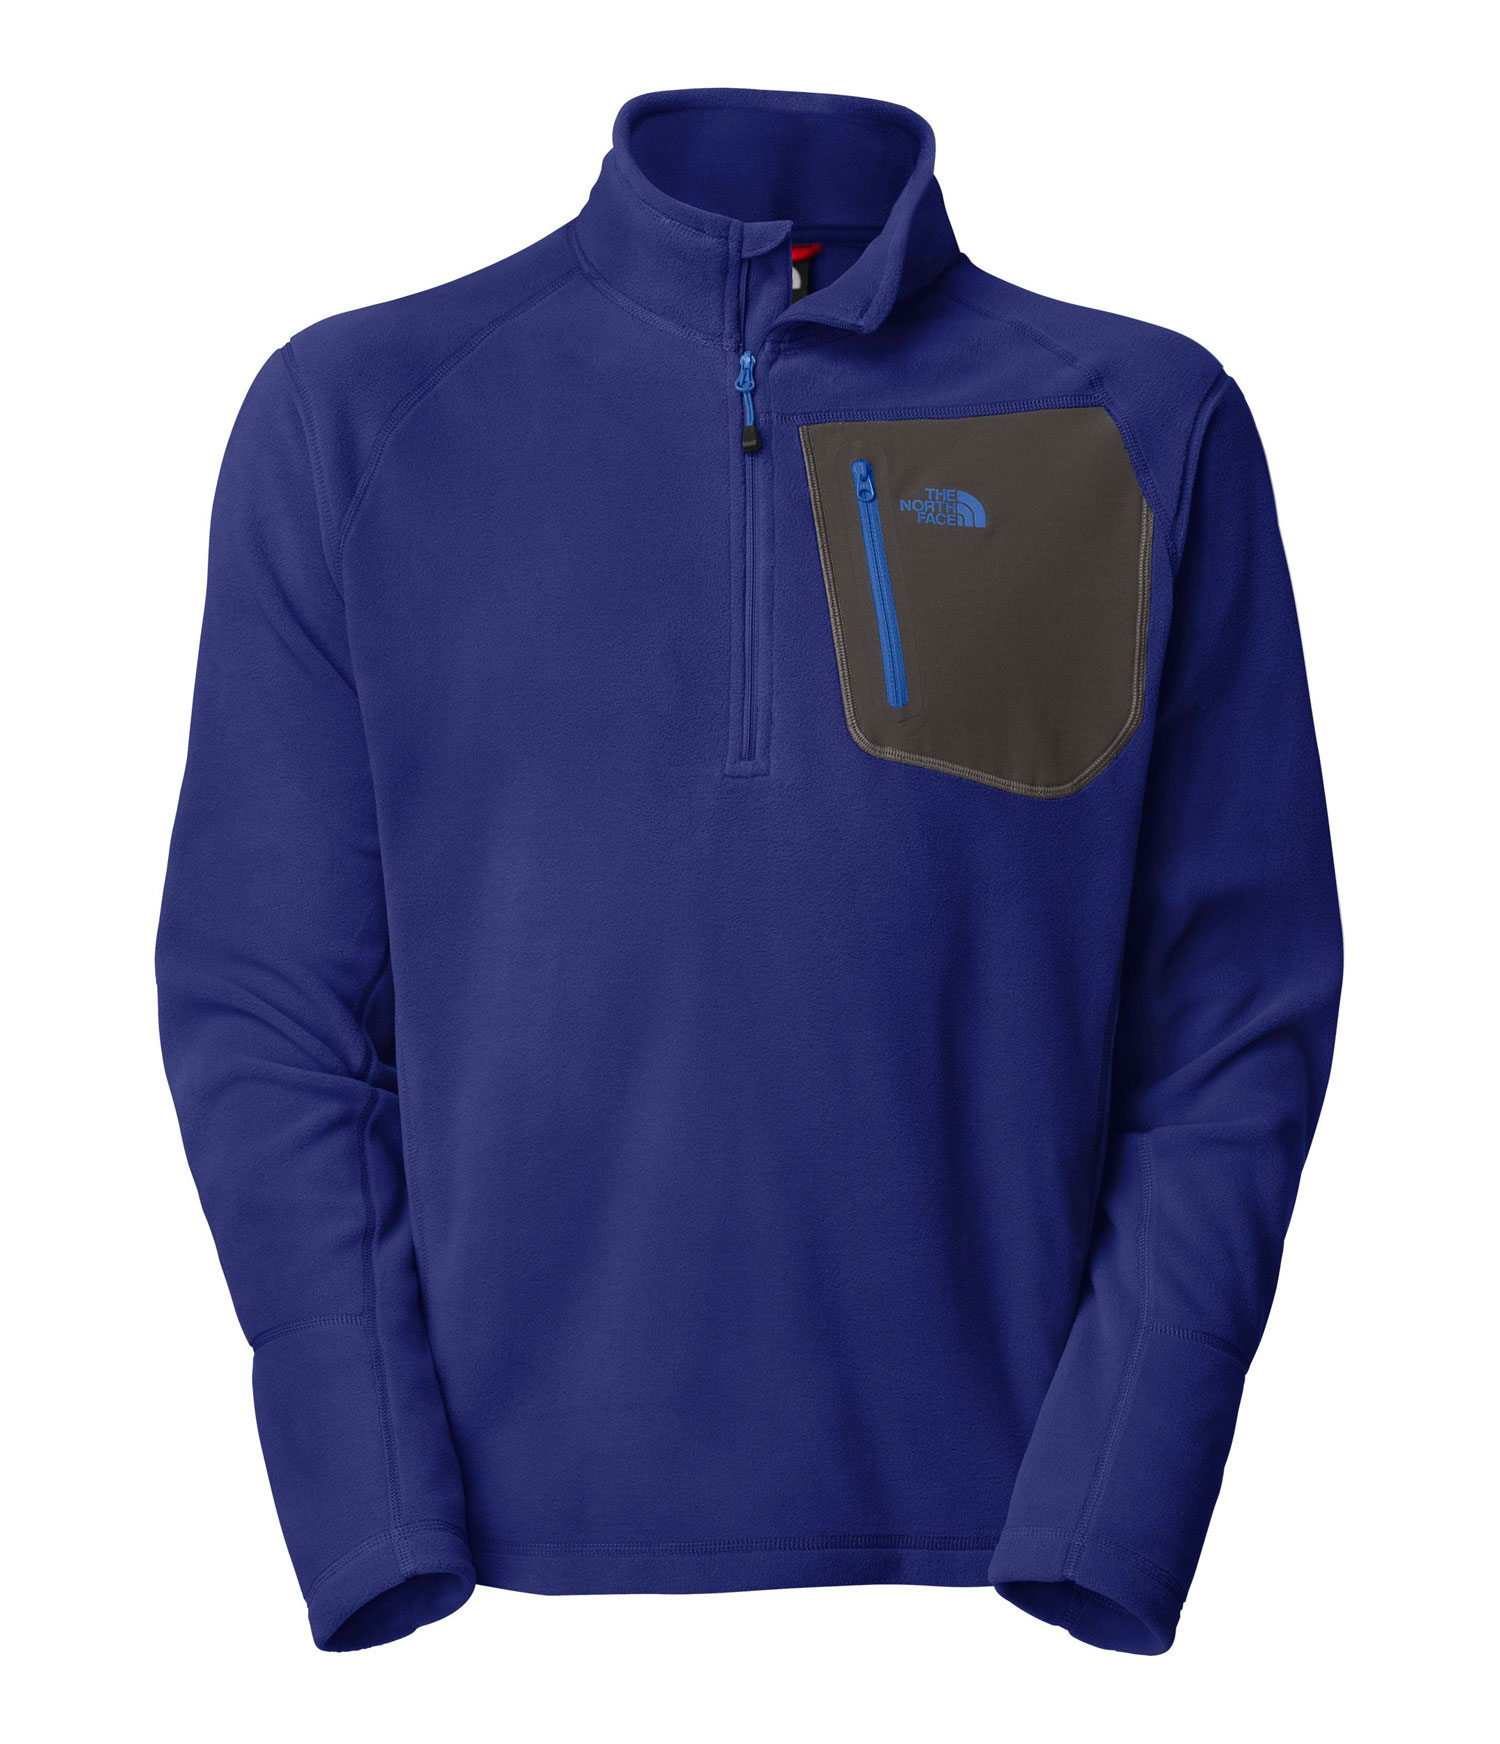 "A breathable, quick-drying midweight zip-neck constructed with Polartec fleece ideal for layering. Key Features of The North Face Tka 100 Trinity Alps 1/4 Zip Jacket: Fabric: 160 g/m (4.64 oz/yd ) 100% polyester Center Back: 27.5"" Midweight layering piece Ultraviolet Protection Factor (UPF) ??? Secure Napoleon zip pocket Flat-locked stitching for strength and reduced abrasion Reverse-coil zips for finished look - $44.95"